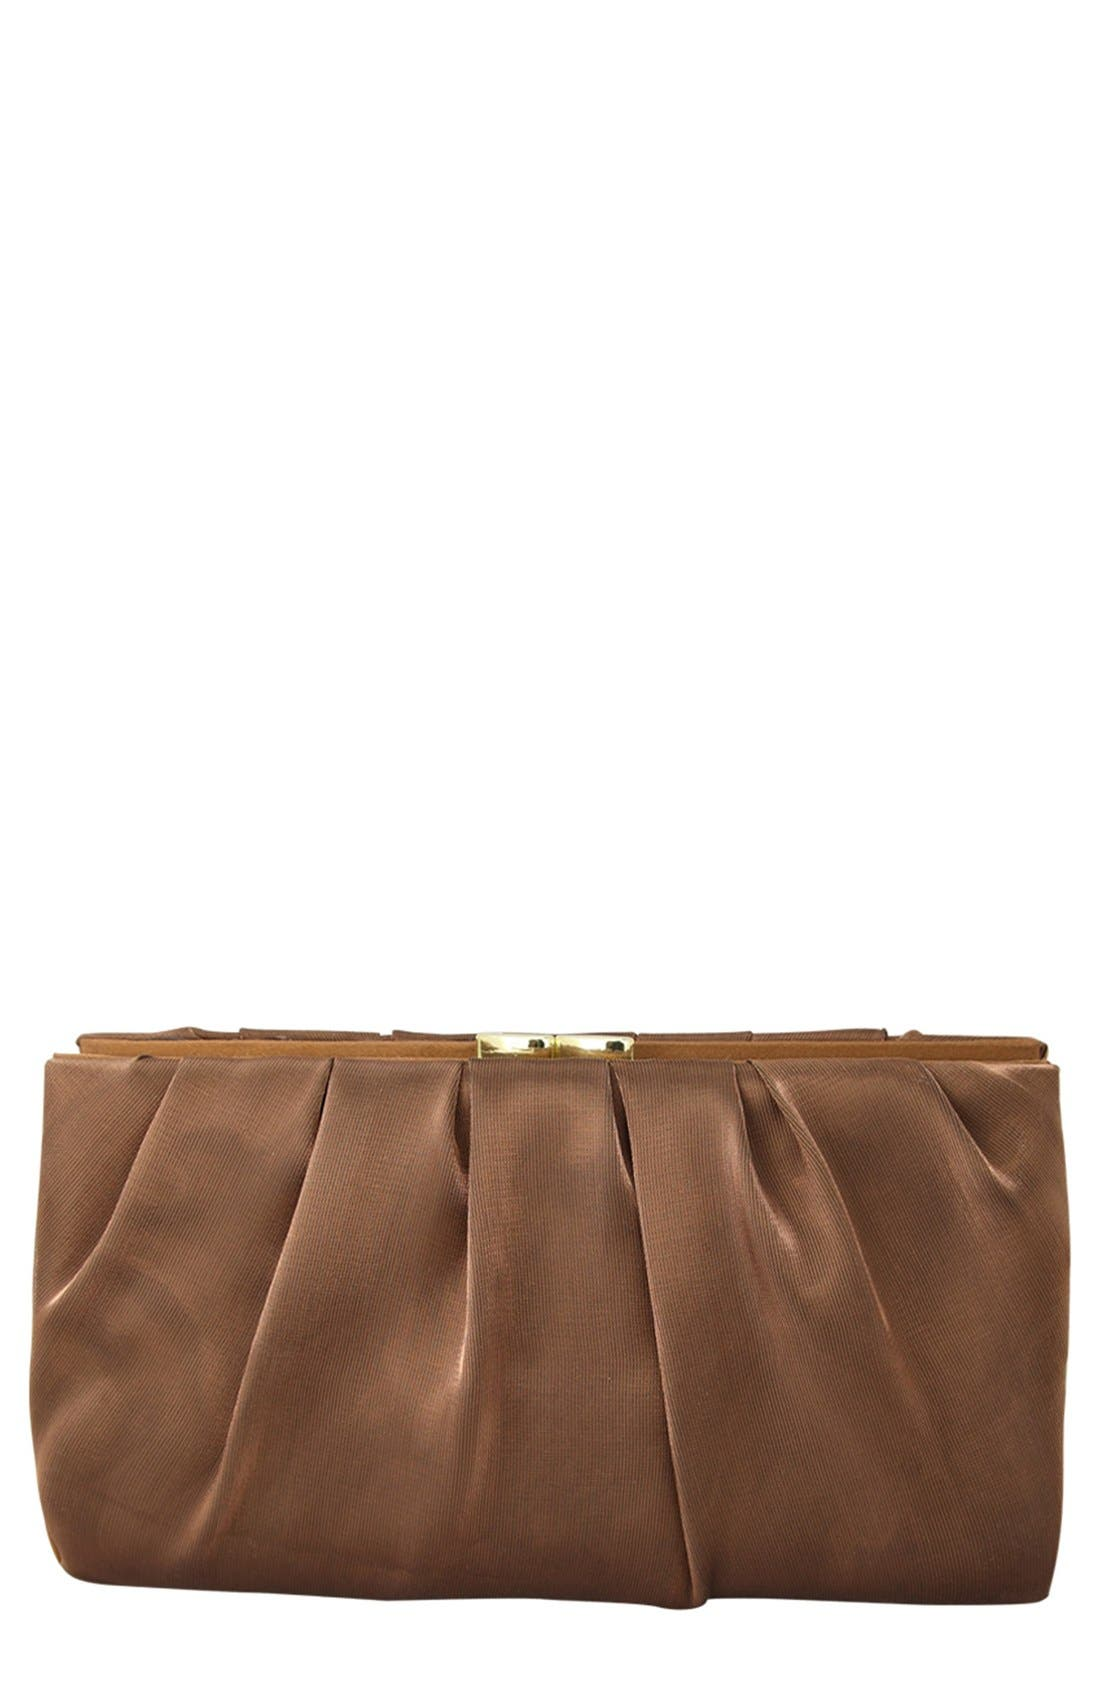 'Larry' Satin Clutch,                             Main thumbnail 1, color,                             200